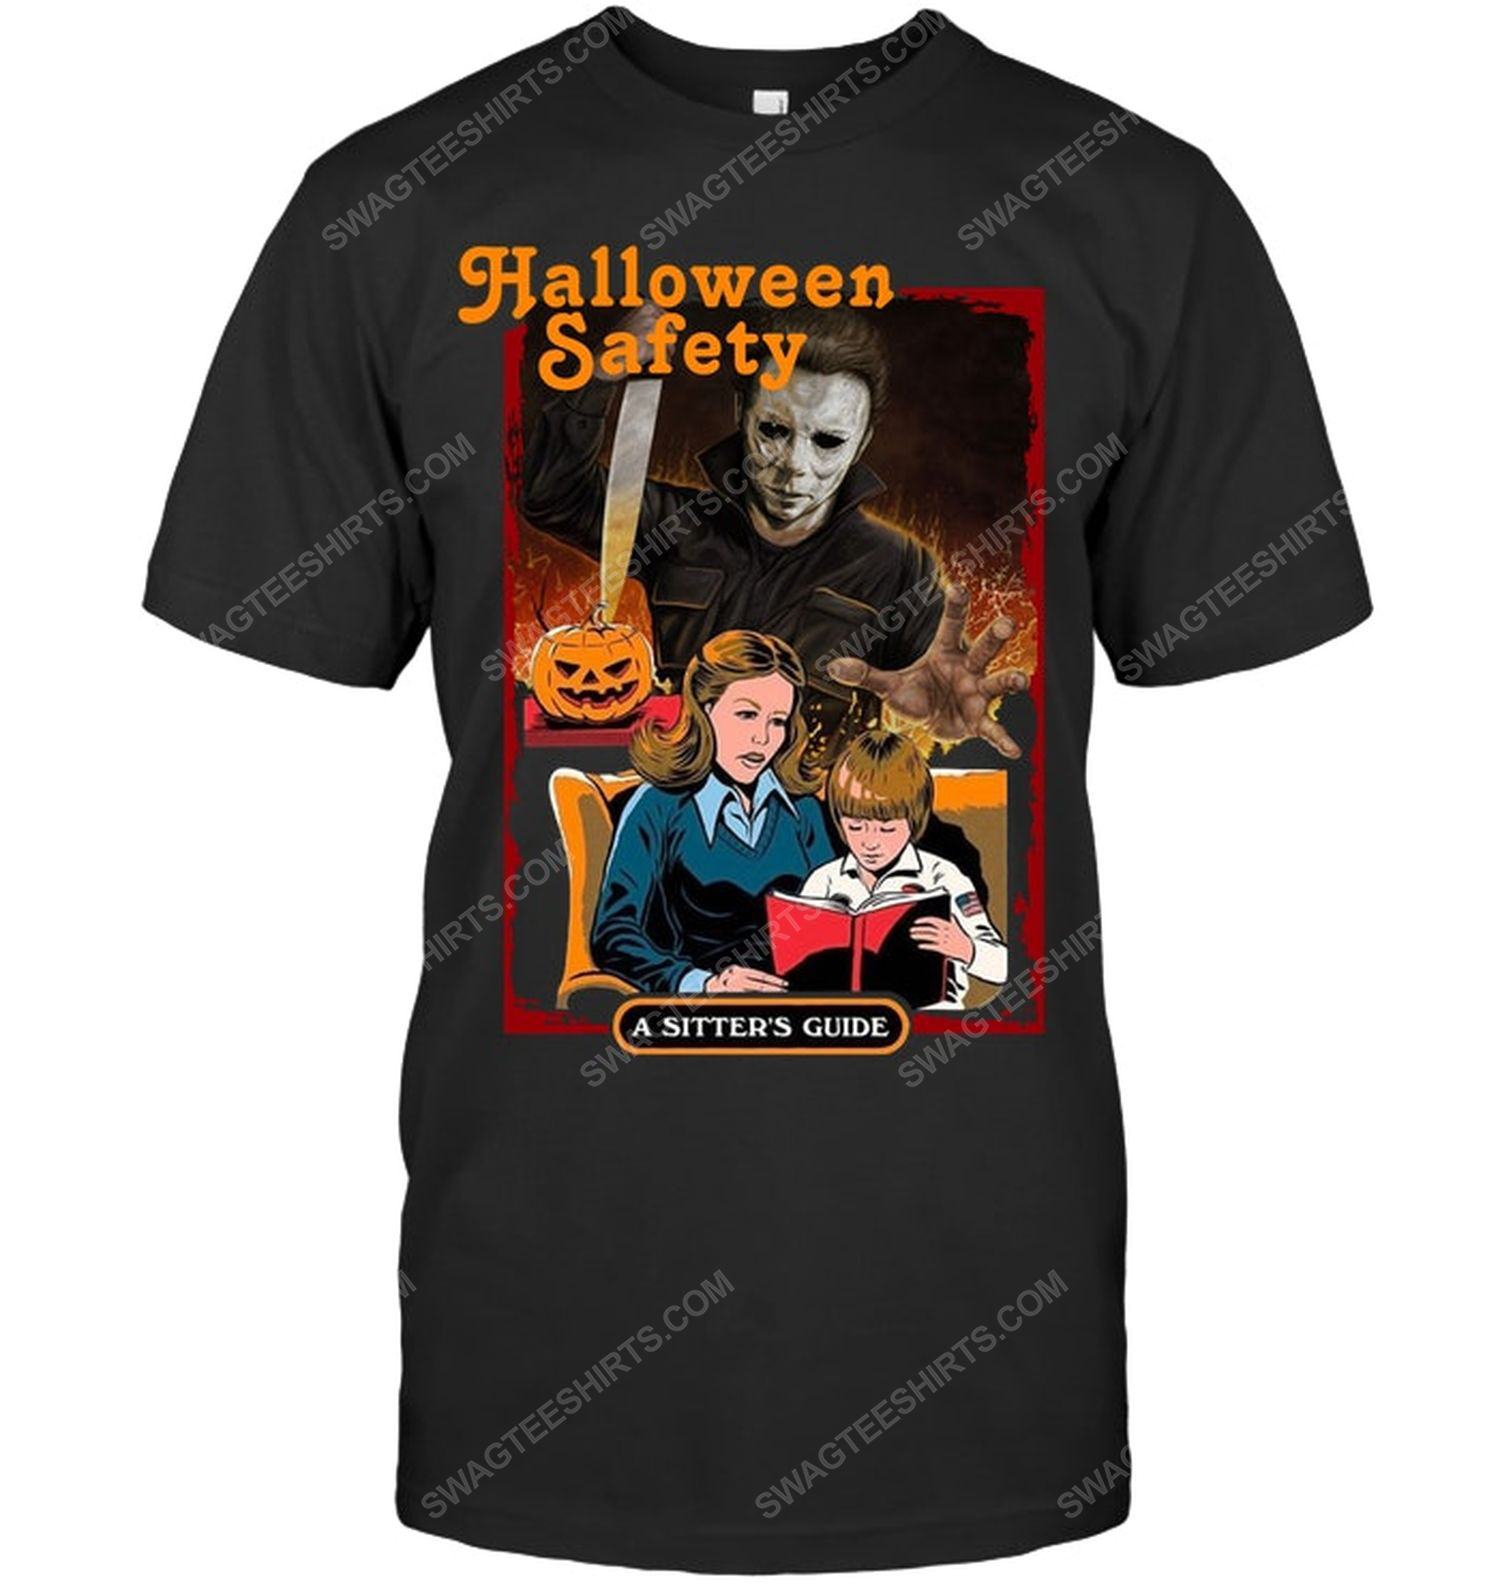 Michael myers halloween safety a sitter's guide shirt 1